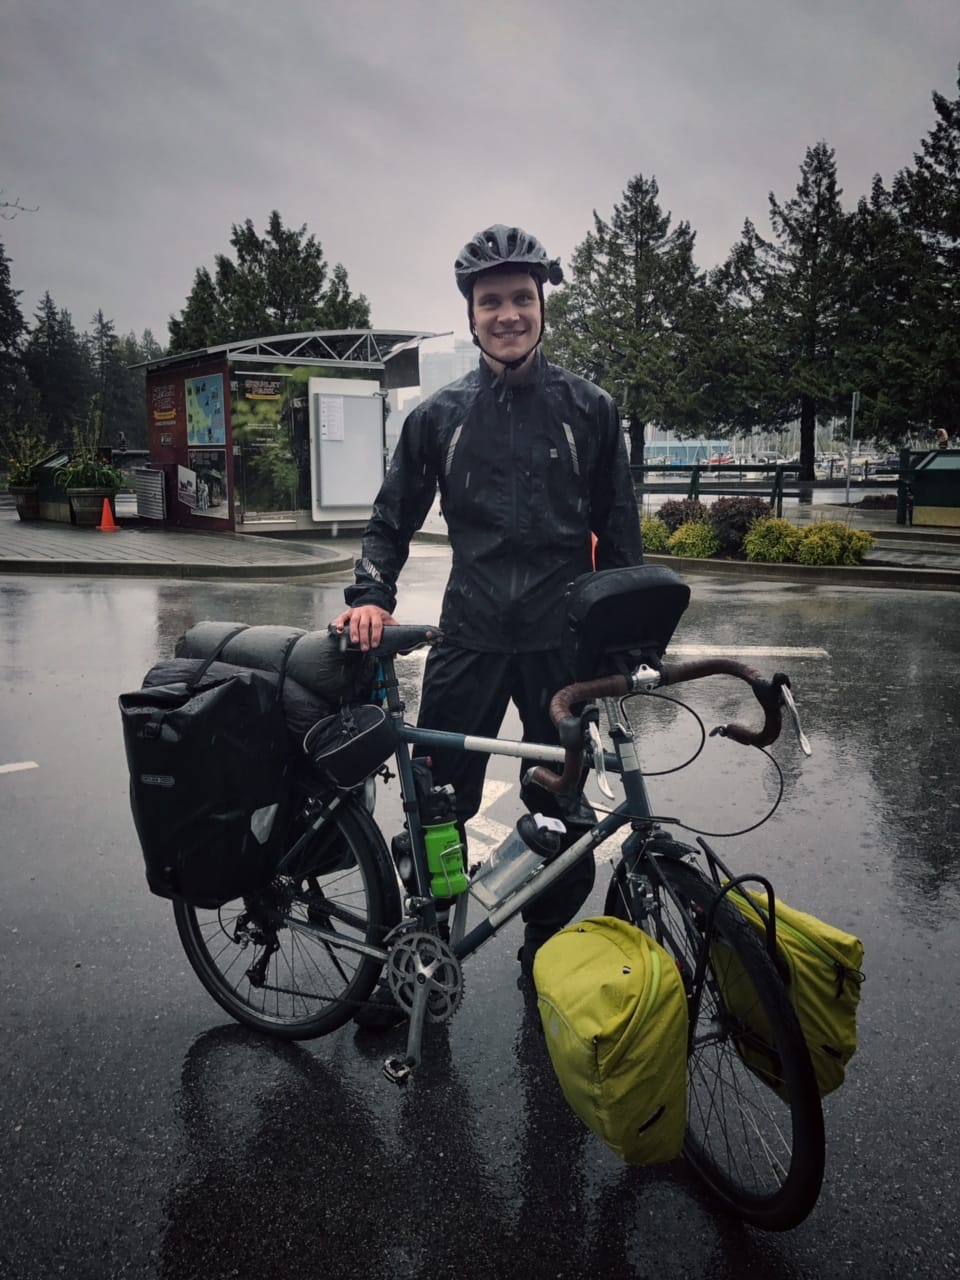 Cameron on his bike before departing Vancouver